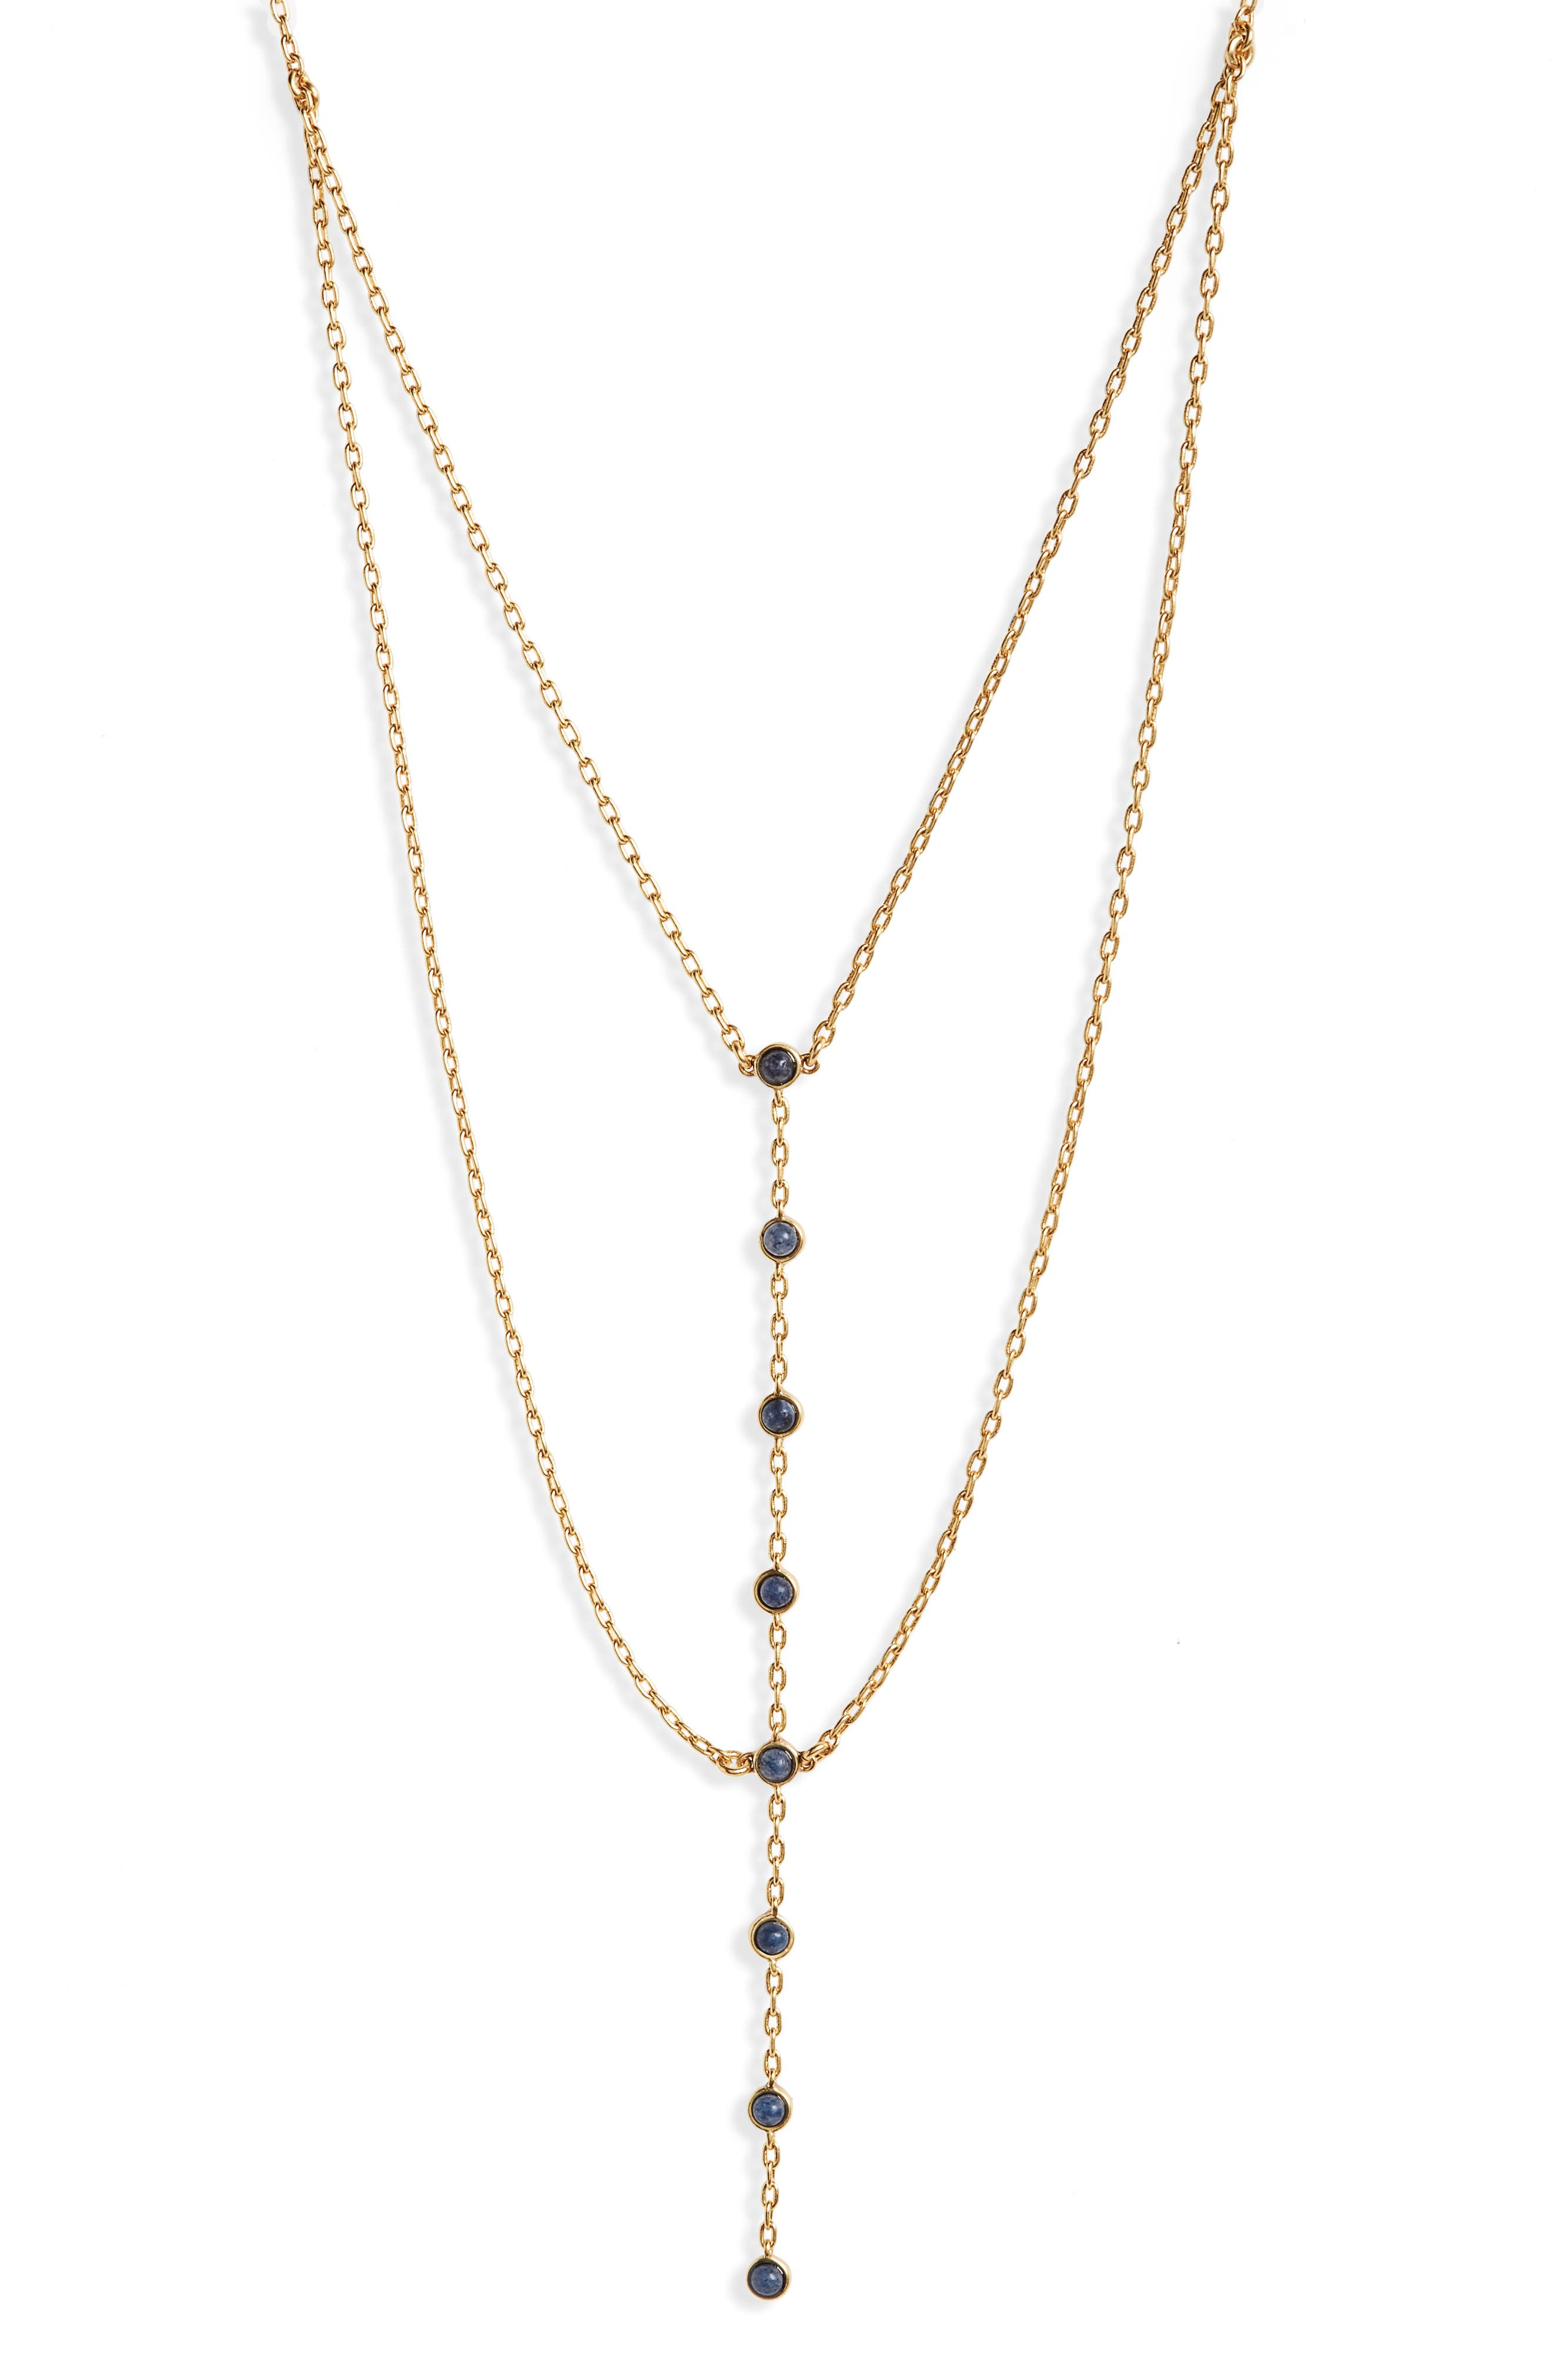 Madewell Nuit Layered Lariat Necklace